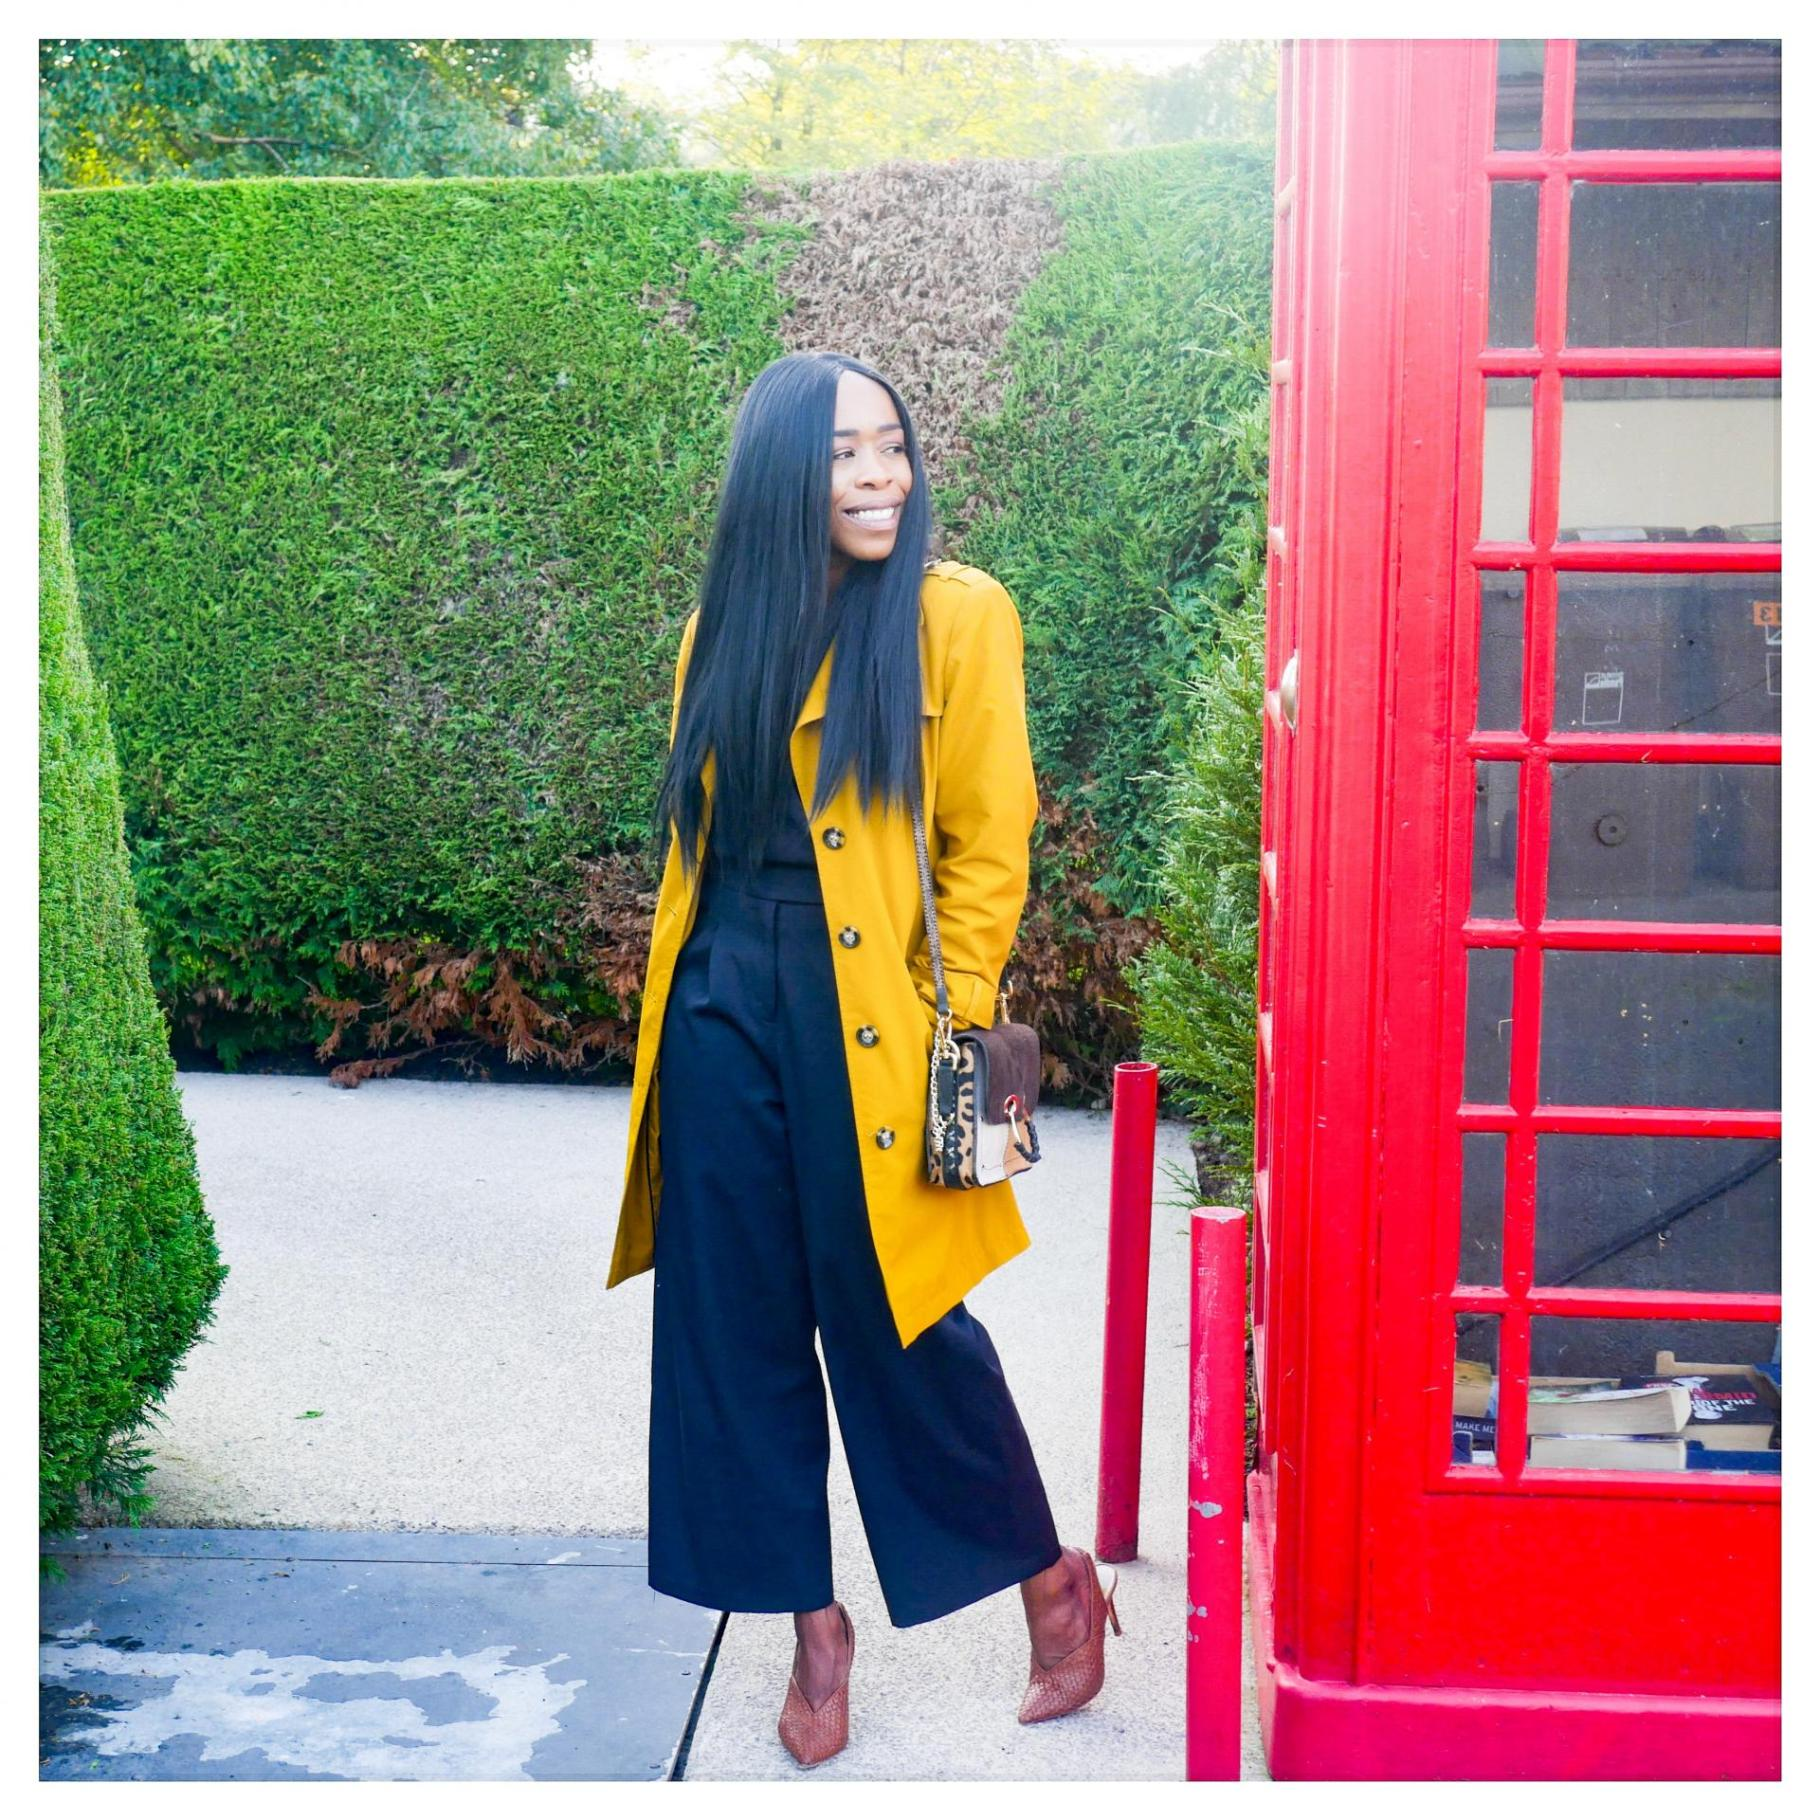 The latest style posts We're all about real style. I'm always on the look out for great finds and ways to wear everything - new and old.